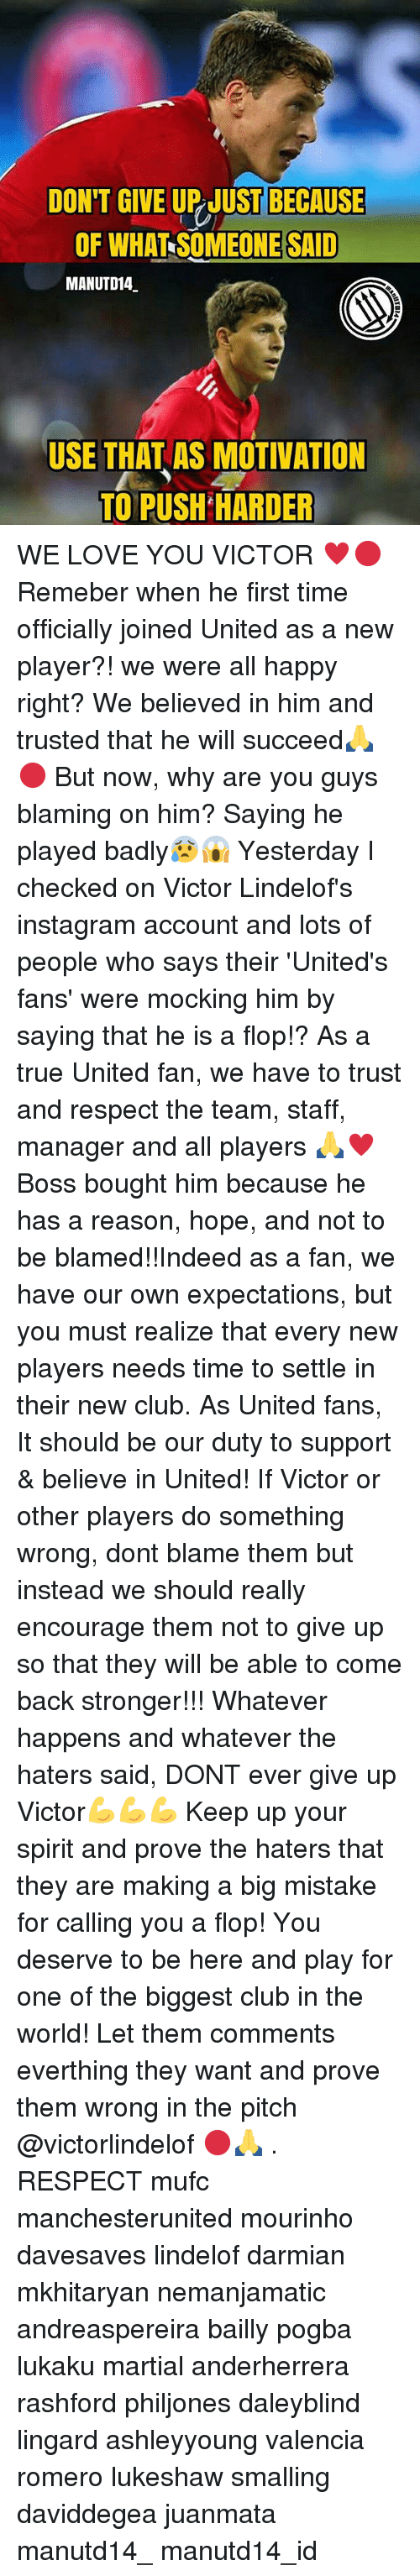 Flopping: DON'T GIVE UP JUST BECAUSE  OF WHAT SOMEONE SAID  MANUTD14  USE THAT AS MOTIVATION  TO PUSH HARDER WE LOVE YOU VICTOR ♥🔴 Remeber when he first time officially joined United as a new player?! we were all happy right? We believed in him and trusted that he will succeed🙏🔴 But now, why are you guys blaming on him? Saying he played badly😰😱 Yesterday I checked on Victor Lindelof's instagram account and lots of people who says their 'United's fans' were mocking him by saying that he is a flop!? As a true United fan, we have to trust and respect the team, staff, manager and all players 🙏♥ Boss bought him because he has a reason, hope, and not to be blamed!!Indeed as a fan, we have our own expectations, but you must realize that every new players needs time to settle in their new club. As United fans, It should be our duty to support & believe in United! If Victor or other players do something wrong, dont blame them but instead we should really encourage them not to give up so that they will be able to come back stronger!!! Whatever happens and whatever the haters said, DONT ever give up Victor💪💪💪 Keep up your spirit and prove the haters that they are making a big mistake for calling you a flop! You deserve to be here and play for one of the biggest club in the world! Let them comments everthing they want and prove them wrong in the pitch @victorlindelof 🔴🙏 . RESPECT mufc manchesterunited mourinho davesaves lindelof darmian mkhitaryan nemanjamatic andreaspereira bailly pogba lukaku martial anderherrera rashford philjones daleyblind lingard ashleyyoung valencia romero lukeshaw smalling daviddegea juanmata manutd14_ manutd14_id